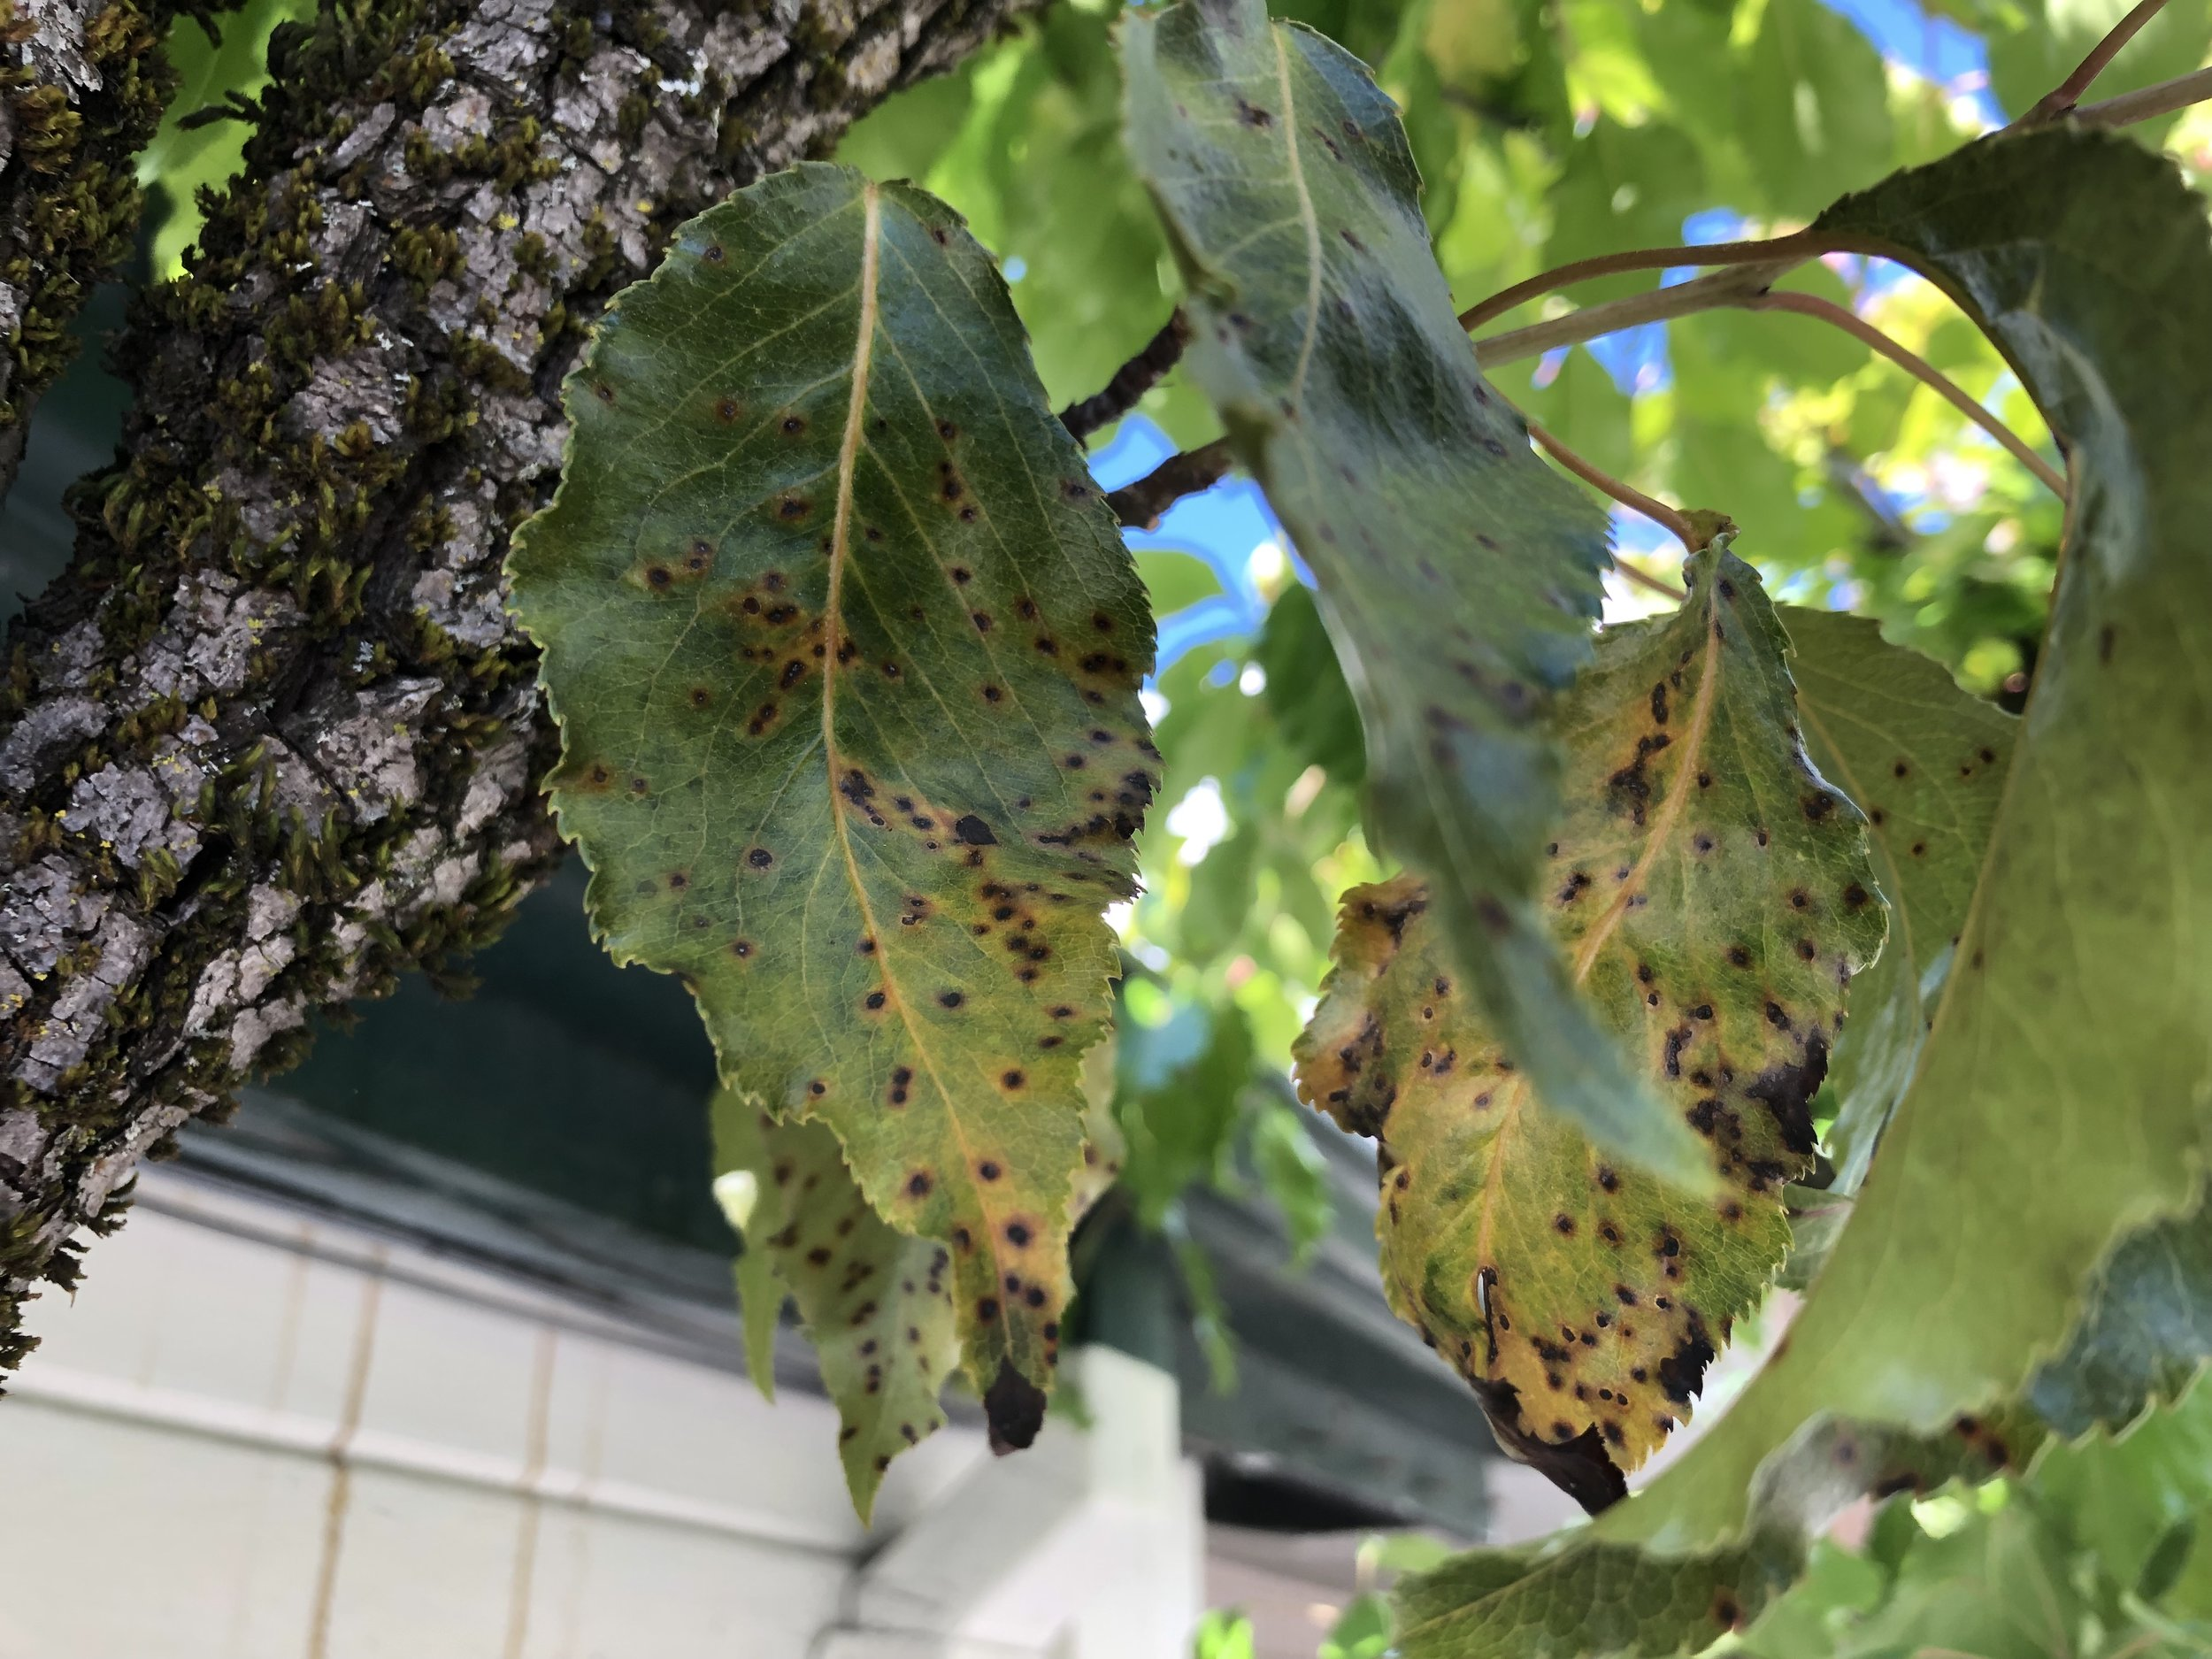 Leaf spots on our espalier ornamental pear tree outside the Garden Shop